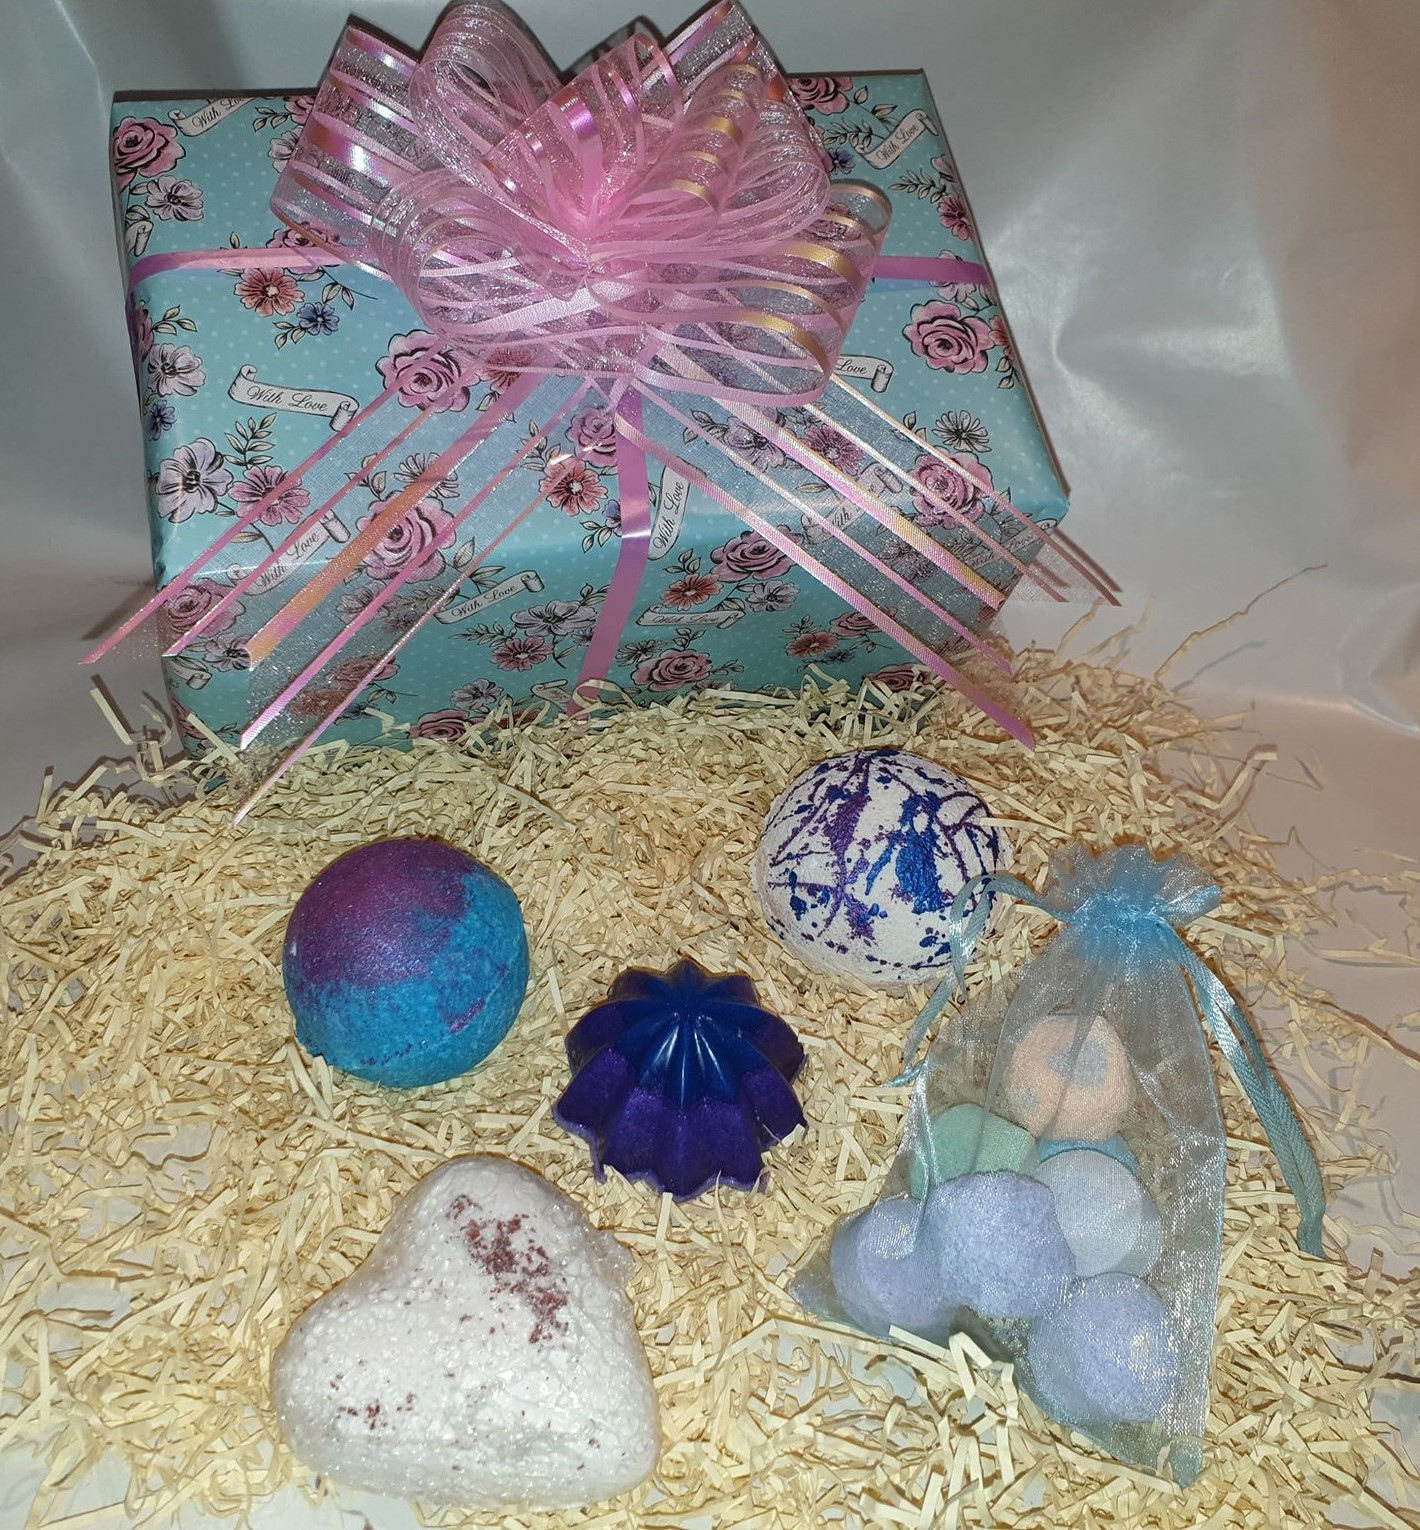 With Love fresh collection gift set, Handmade natural bath bombs and soaps